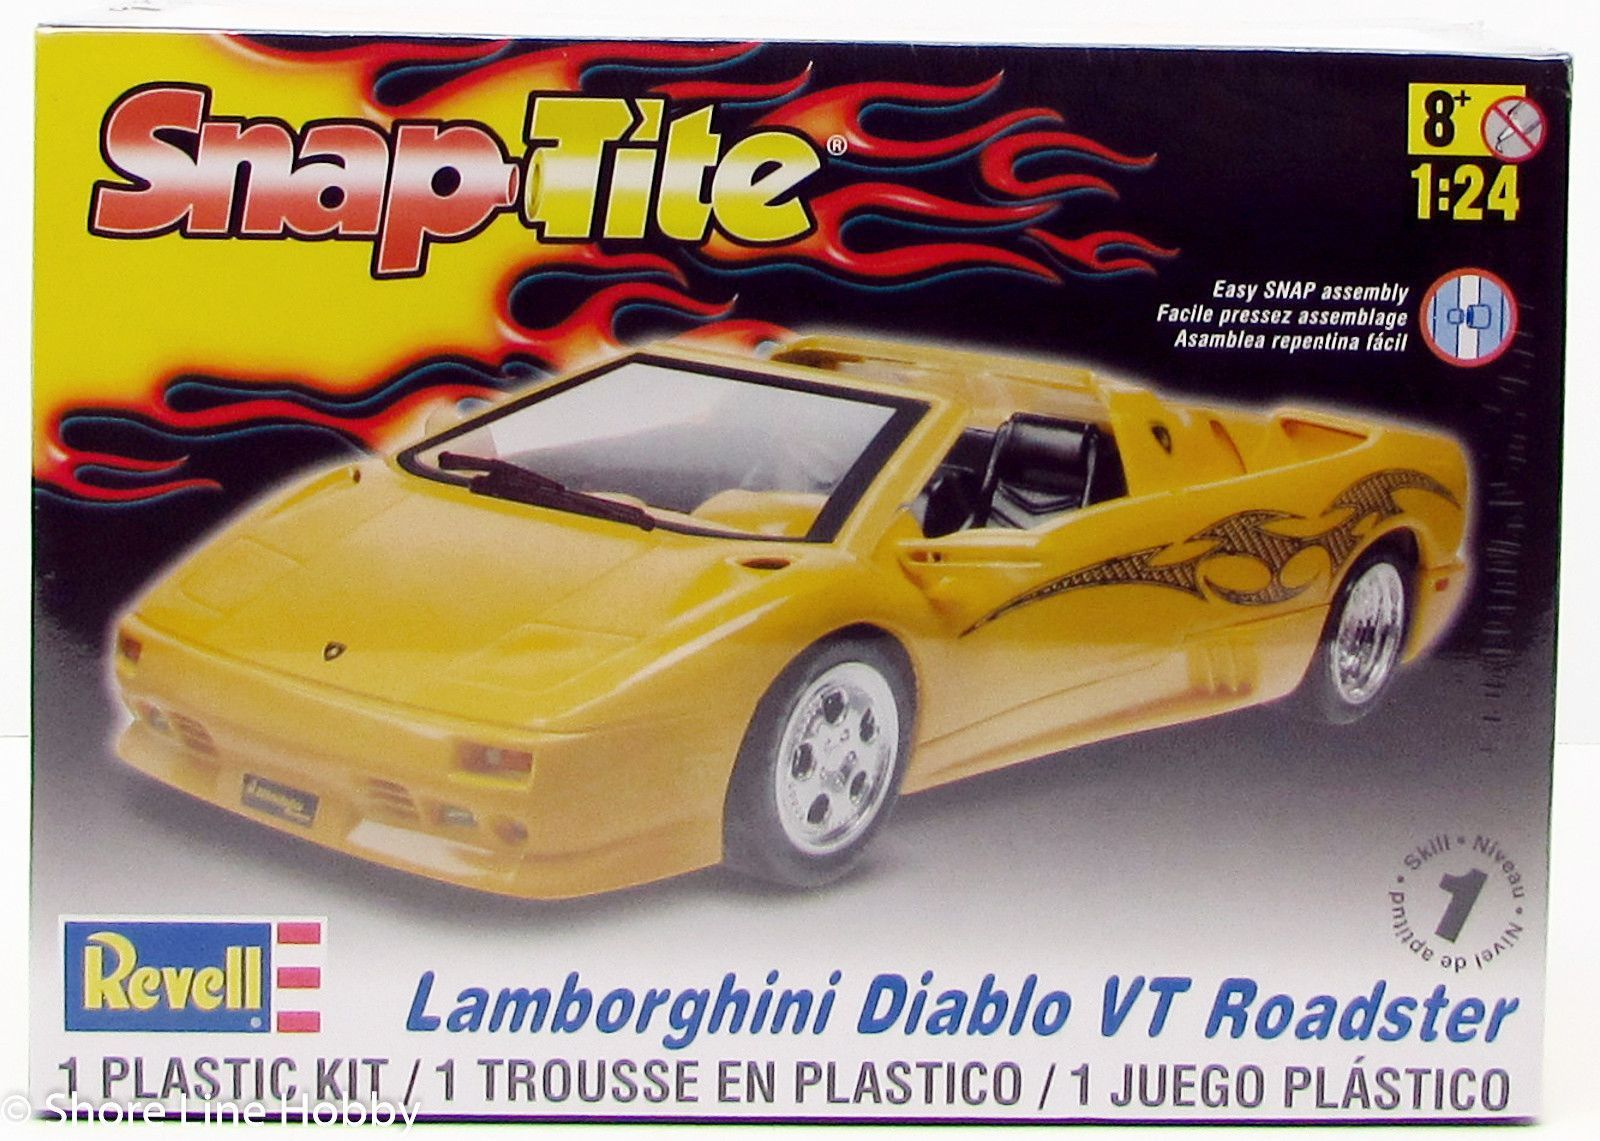 Lovely Revell Lamborghini Diablo VT Roadster 85 1966 1/24 Car Plastic Model Kit |  Products